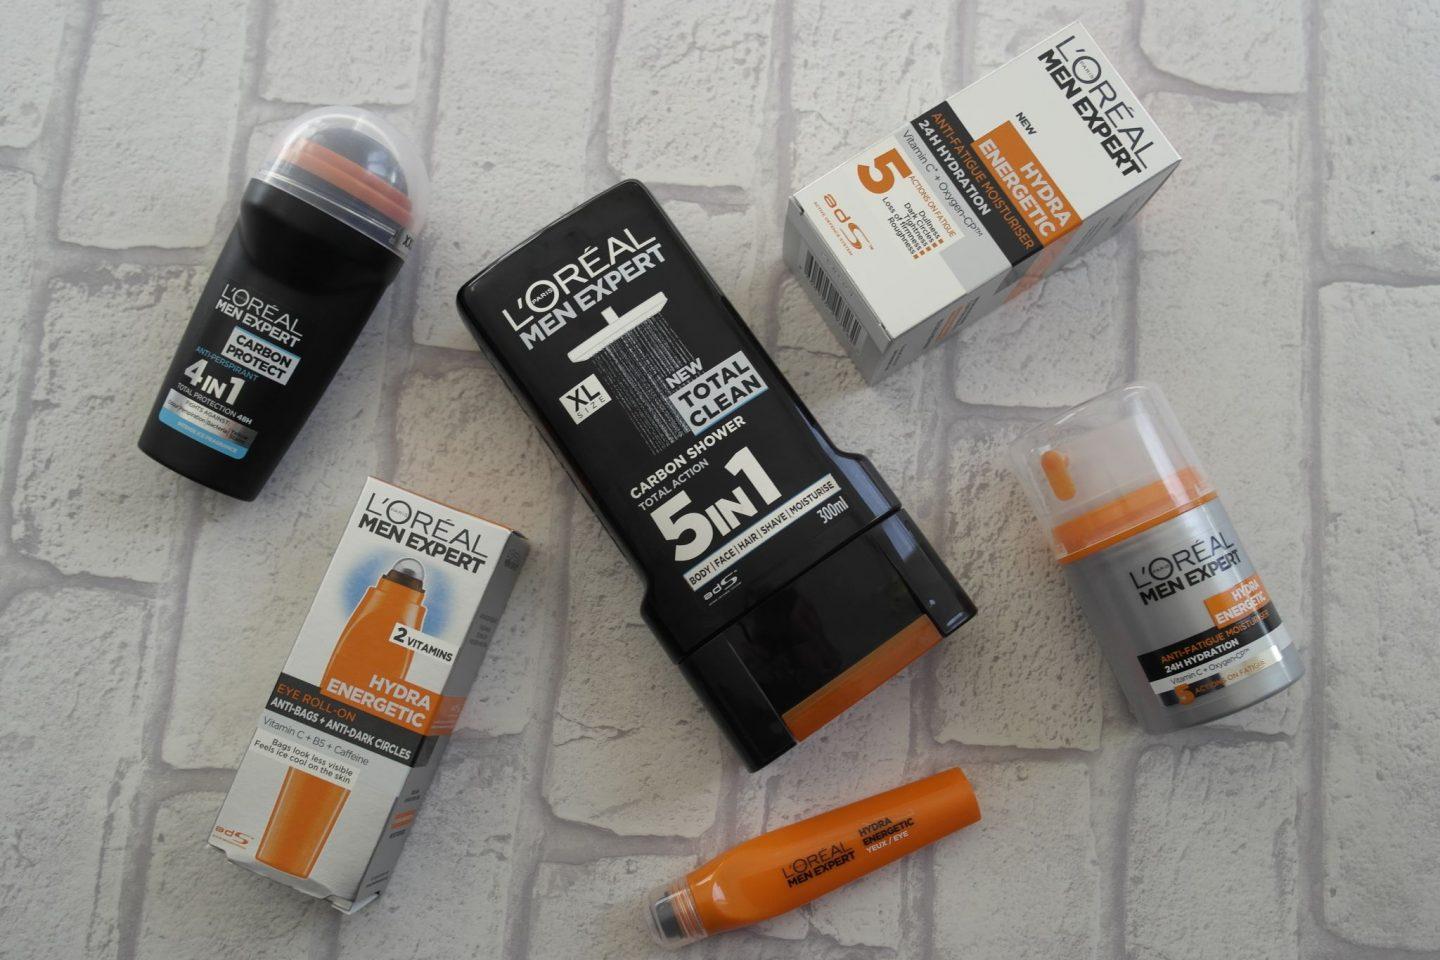 L'Oreal Men Expert Products